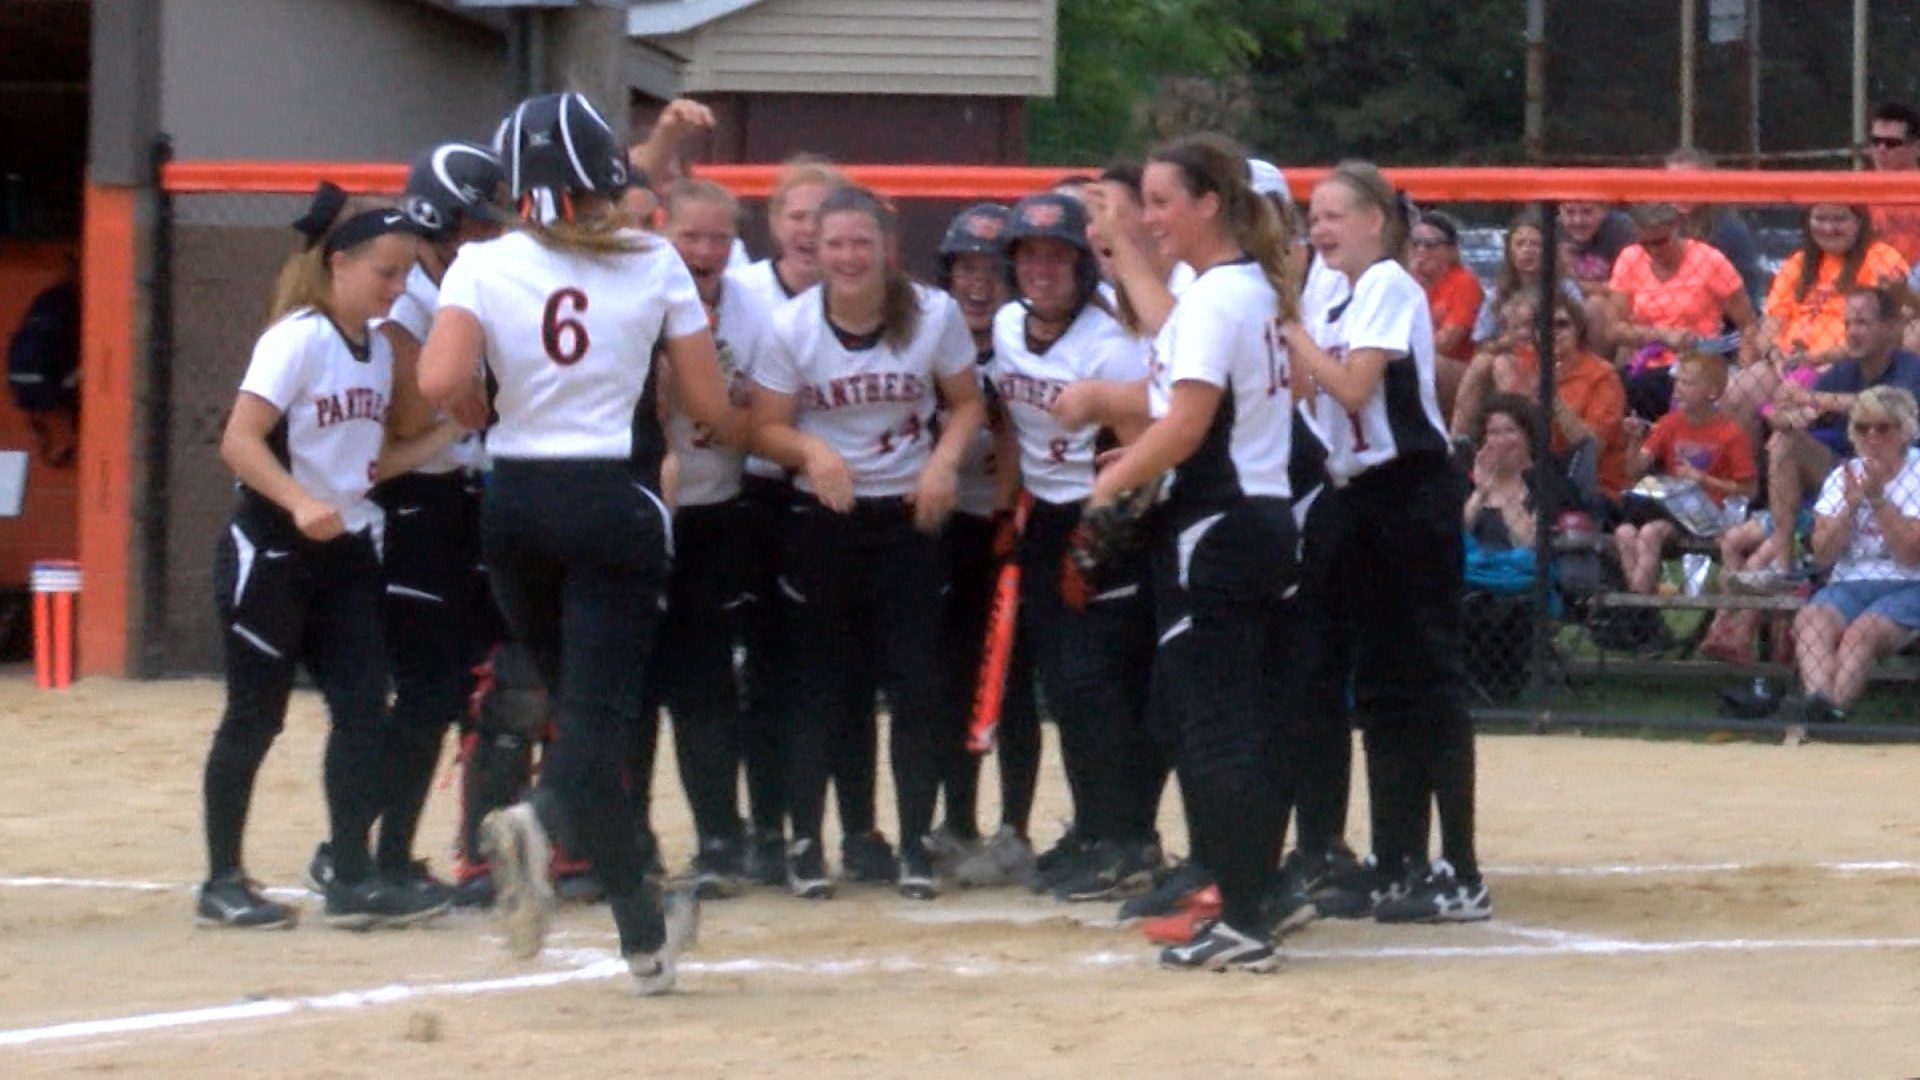 Washington SB wins Regional